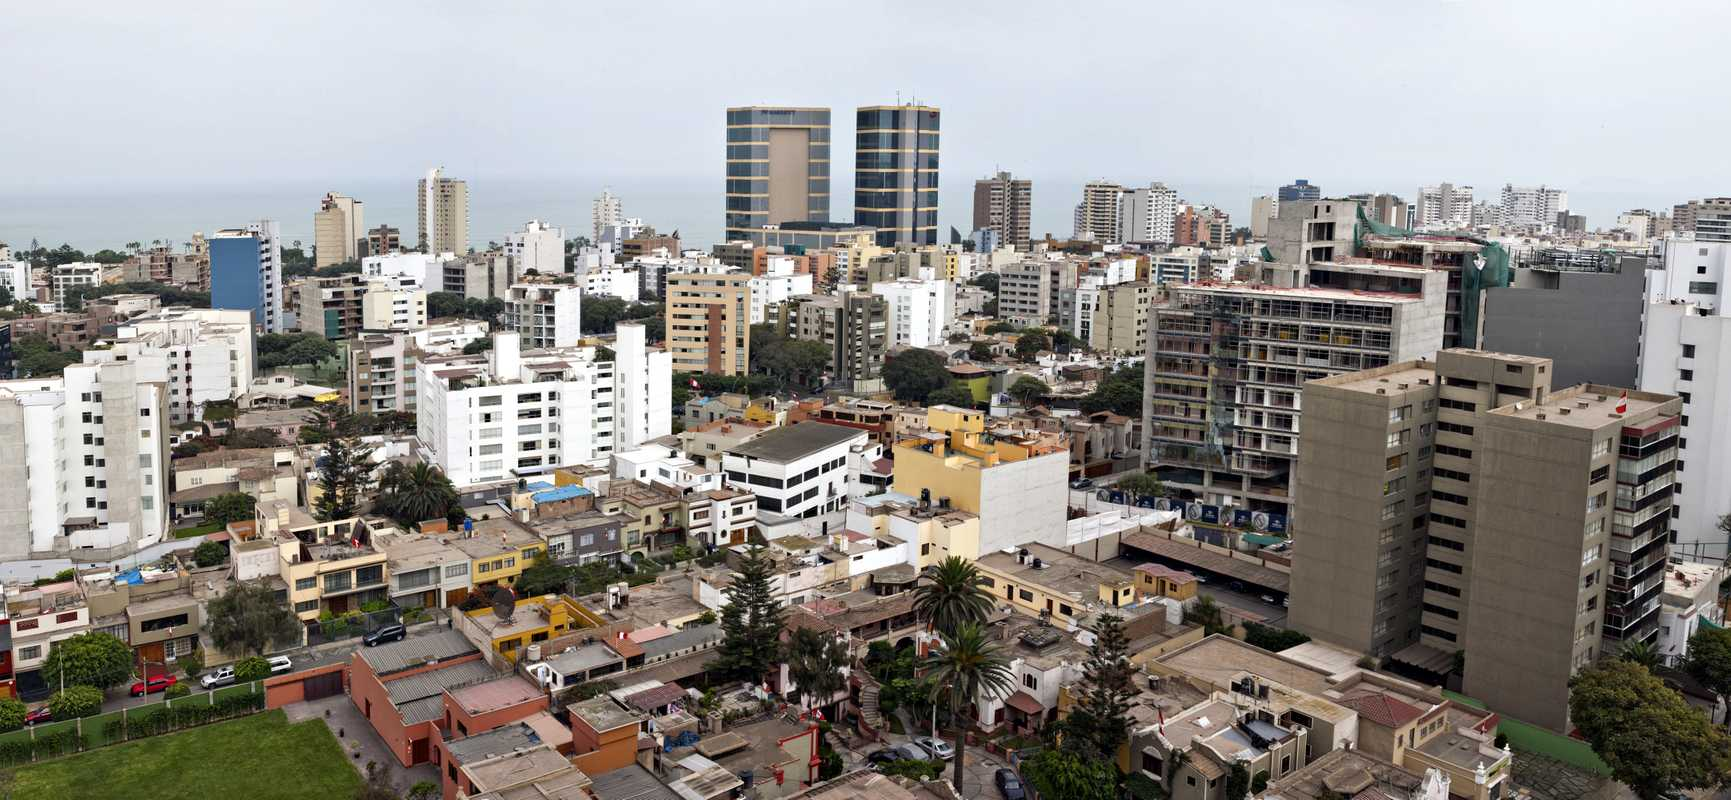 Miraflores, an upmarket part of Lima